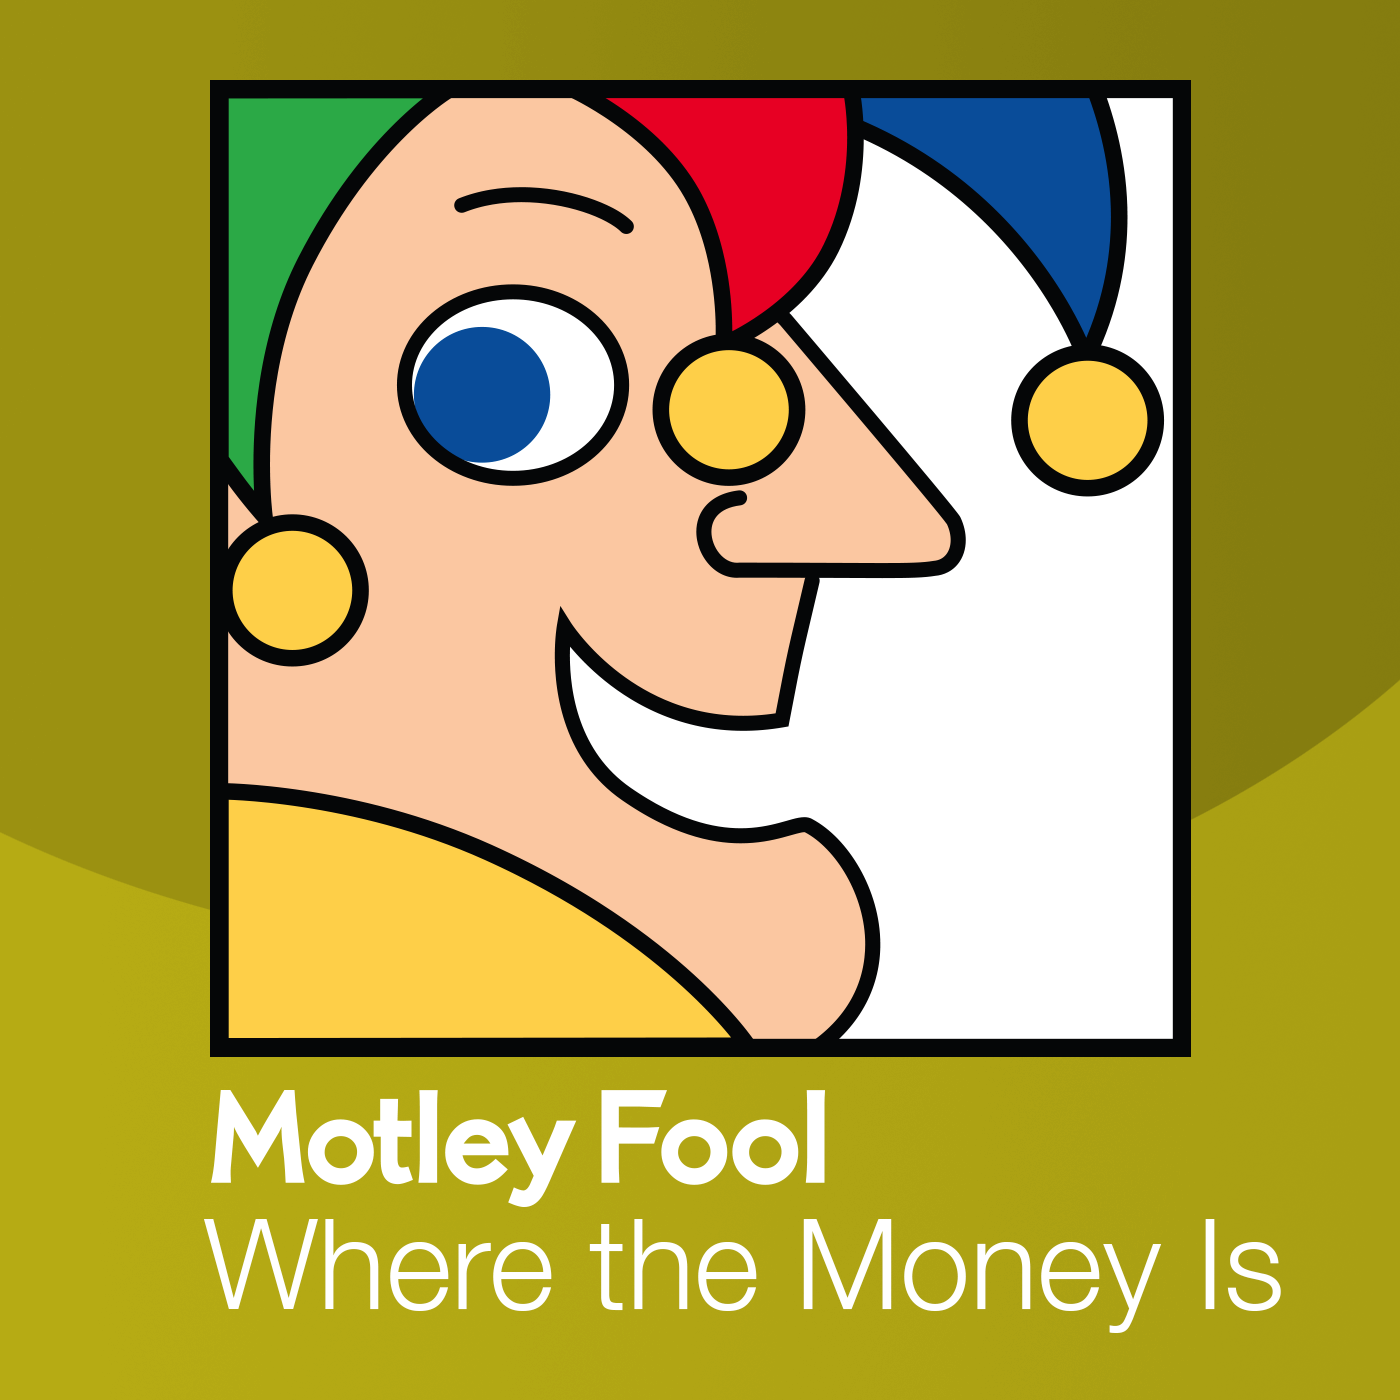 Where the Money Is 04.23.2014